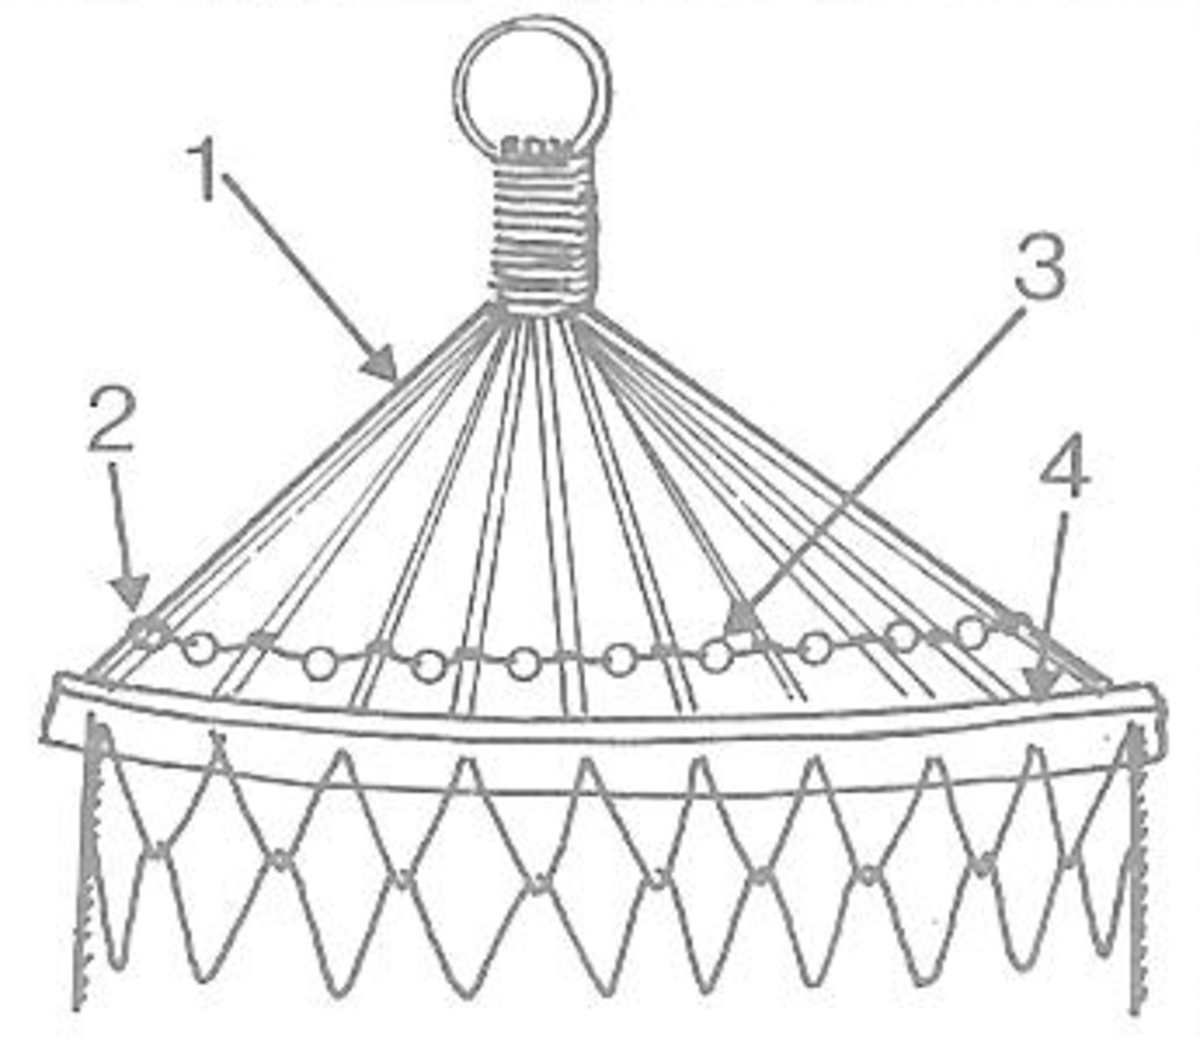 Figure 9 - #1 Shows Supporting Strings; #2 Marling Knot; #3 Bead; #4 Wooden Bar